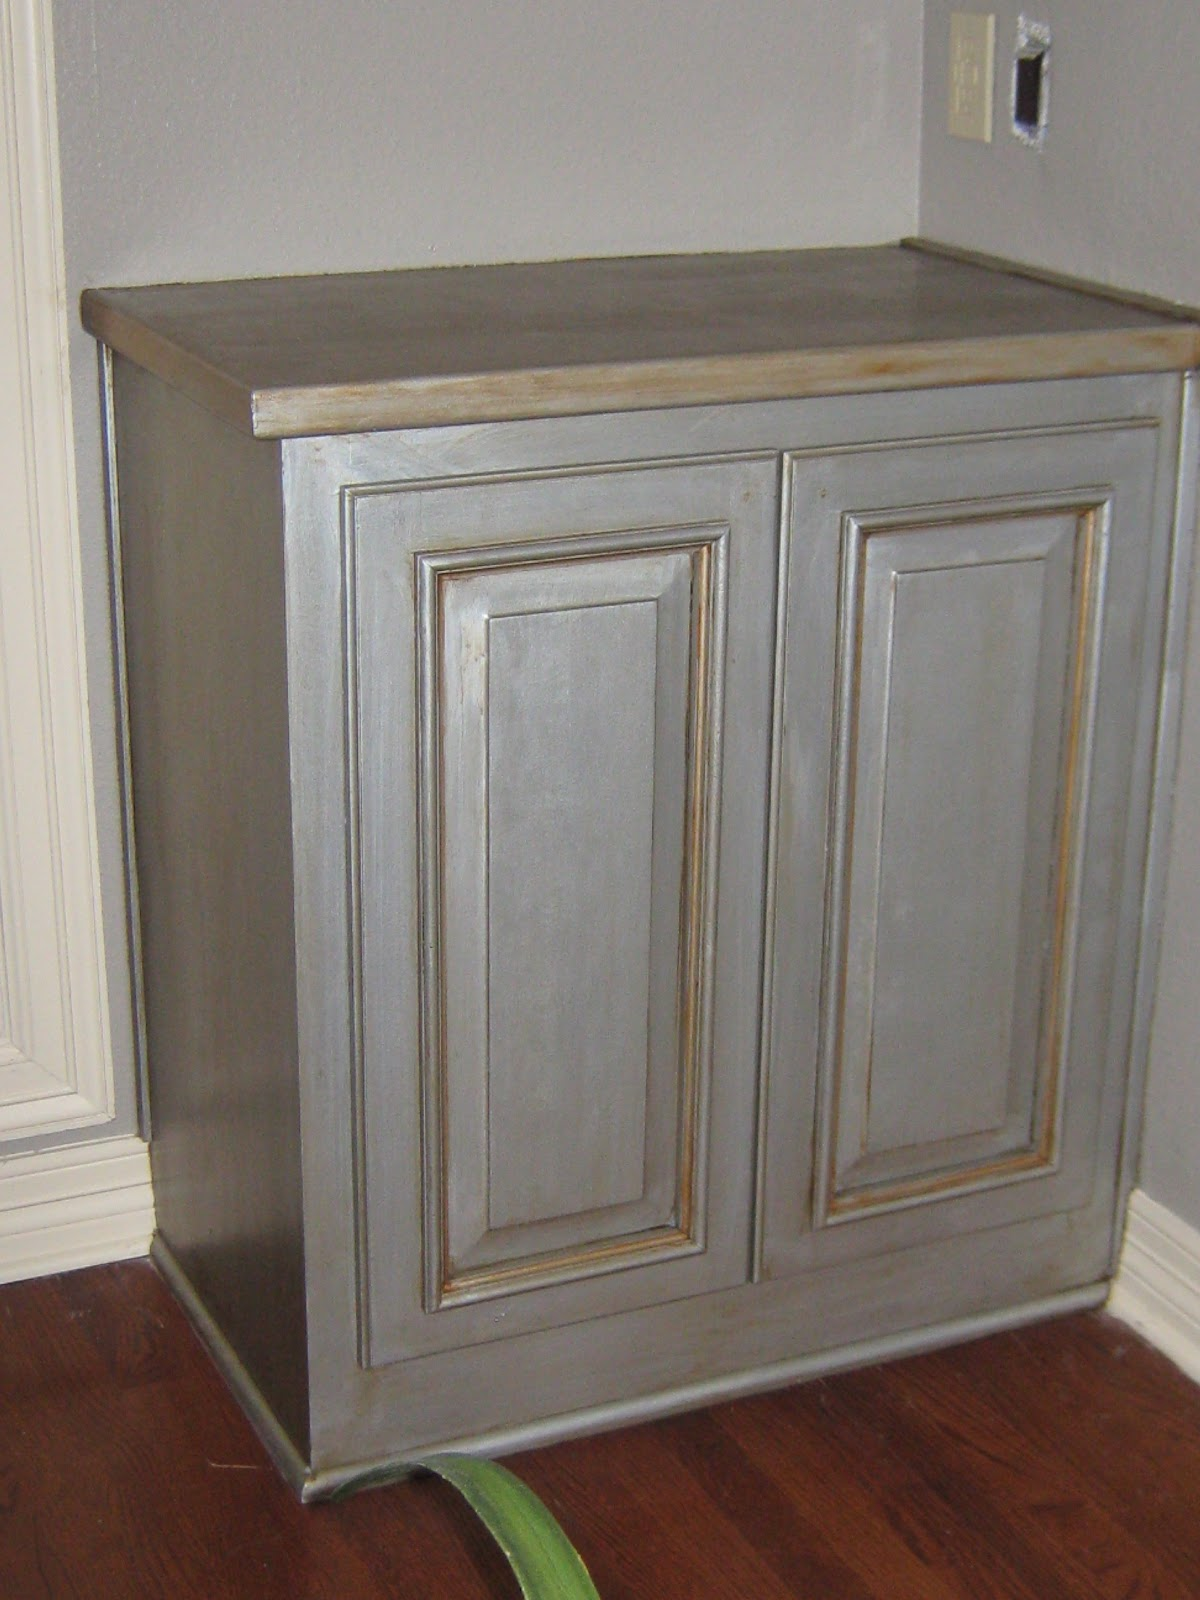 Faux Painting Bathroom Cabinets lynda bergman decorative artisan: painting walls & two cabinets to